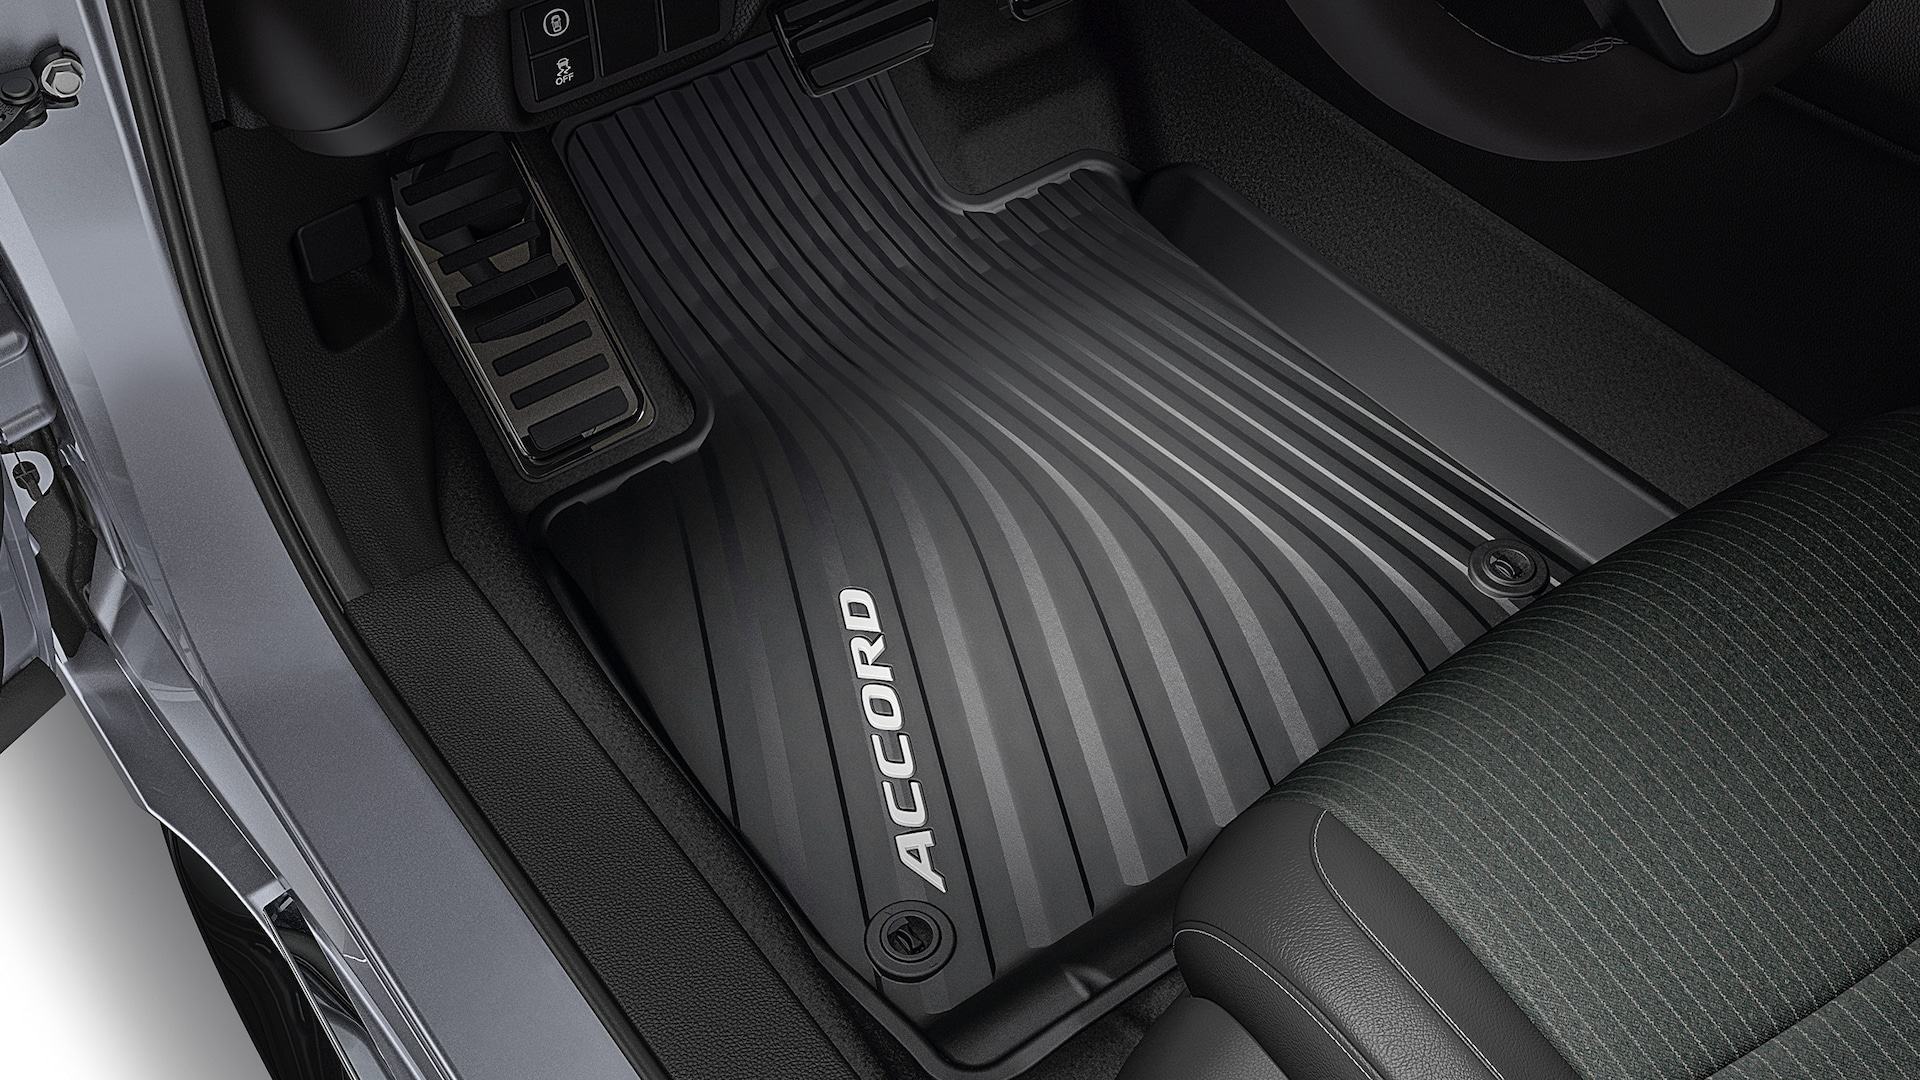 All-season floor mat accessory detail in the 2021 Honda Accord.